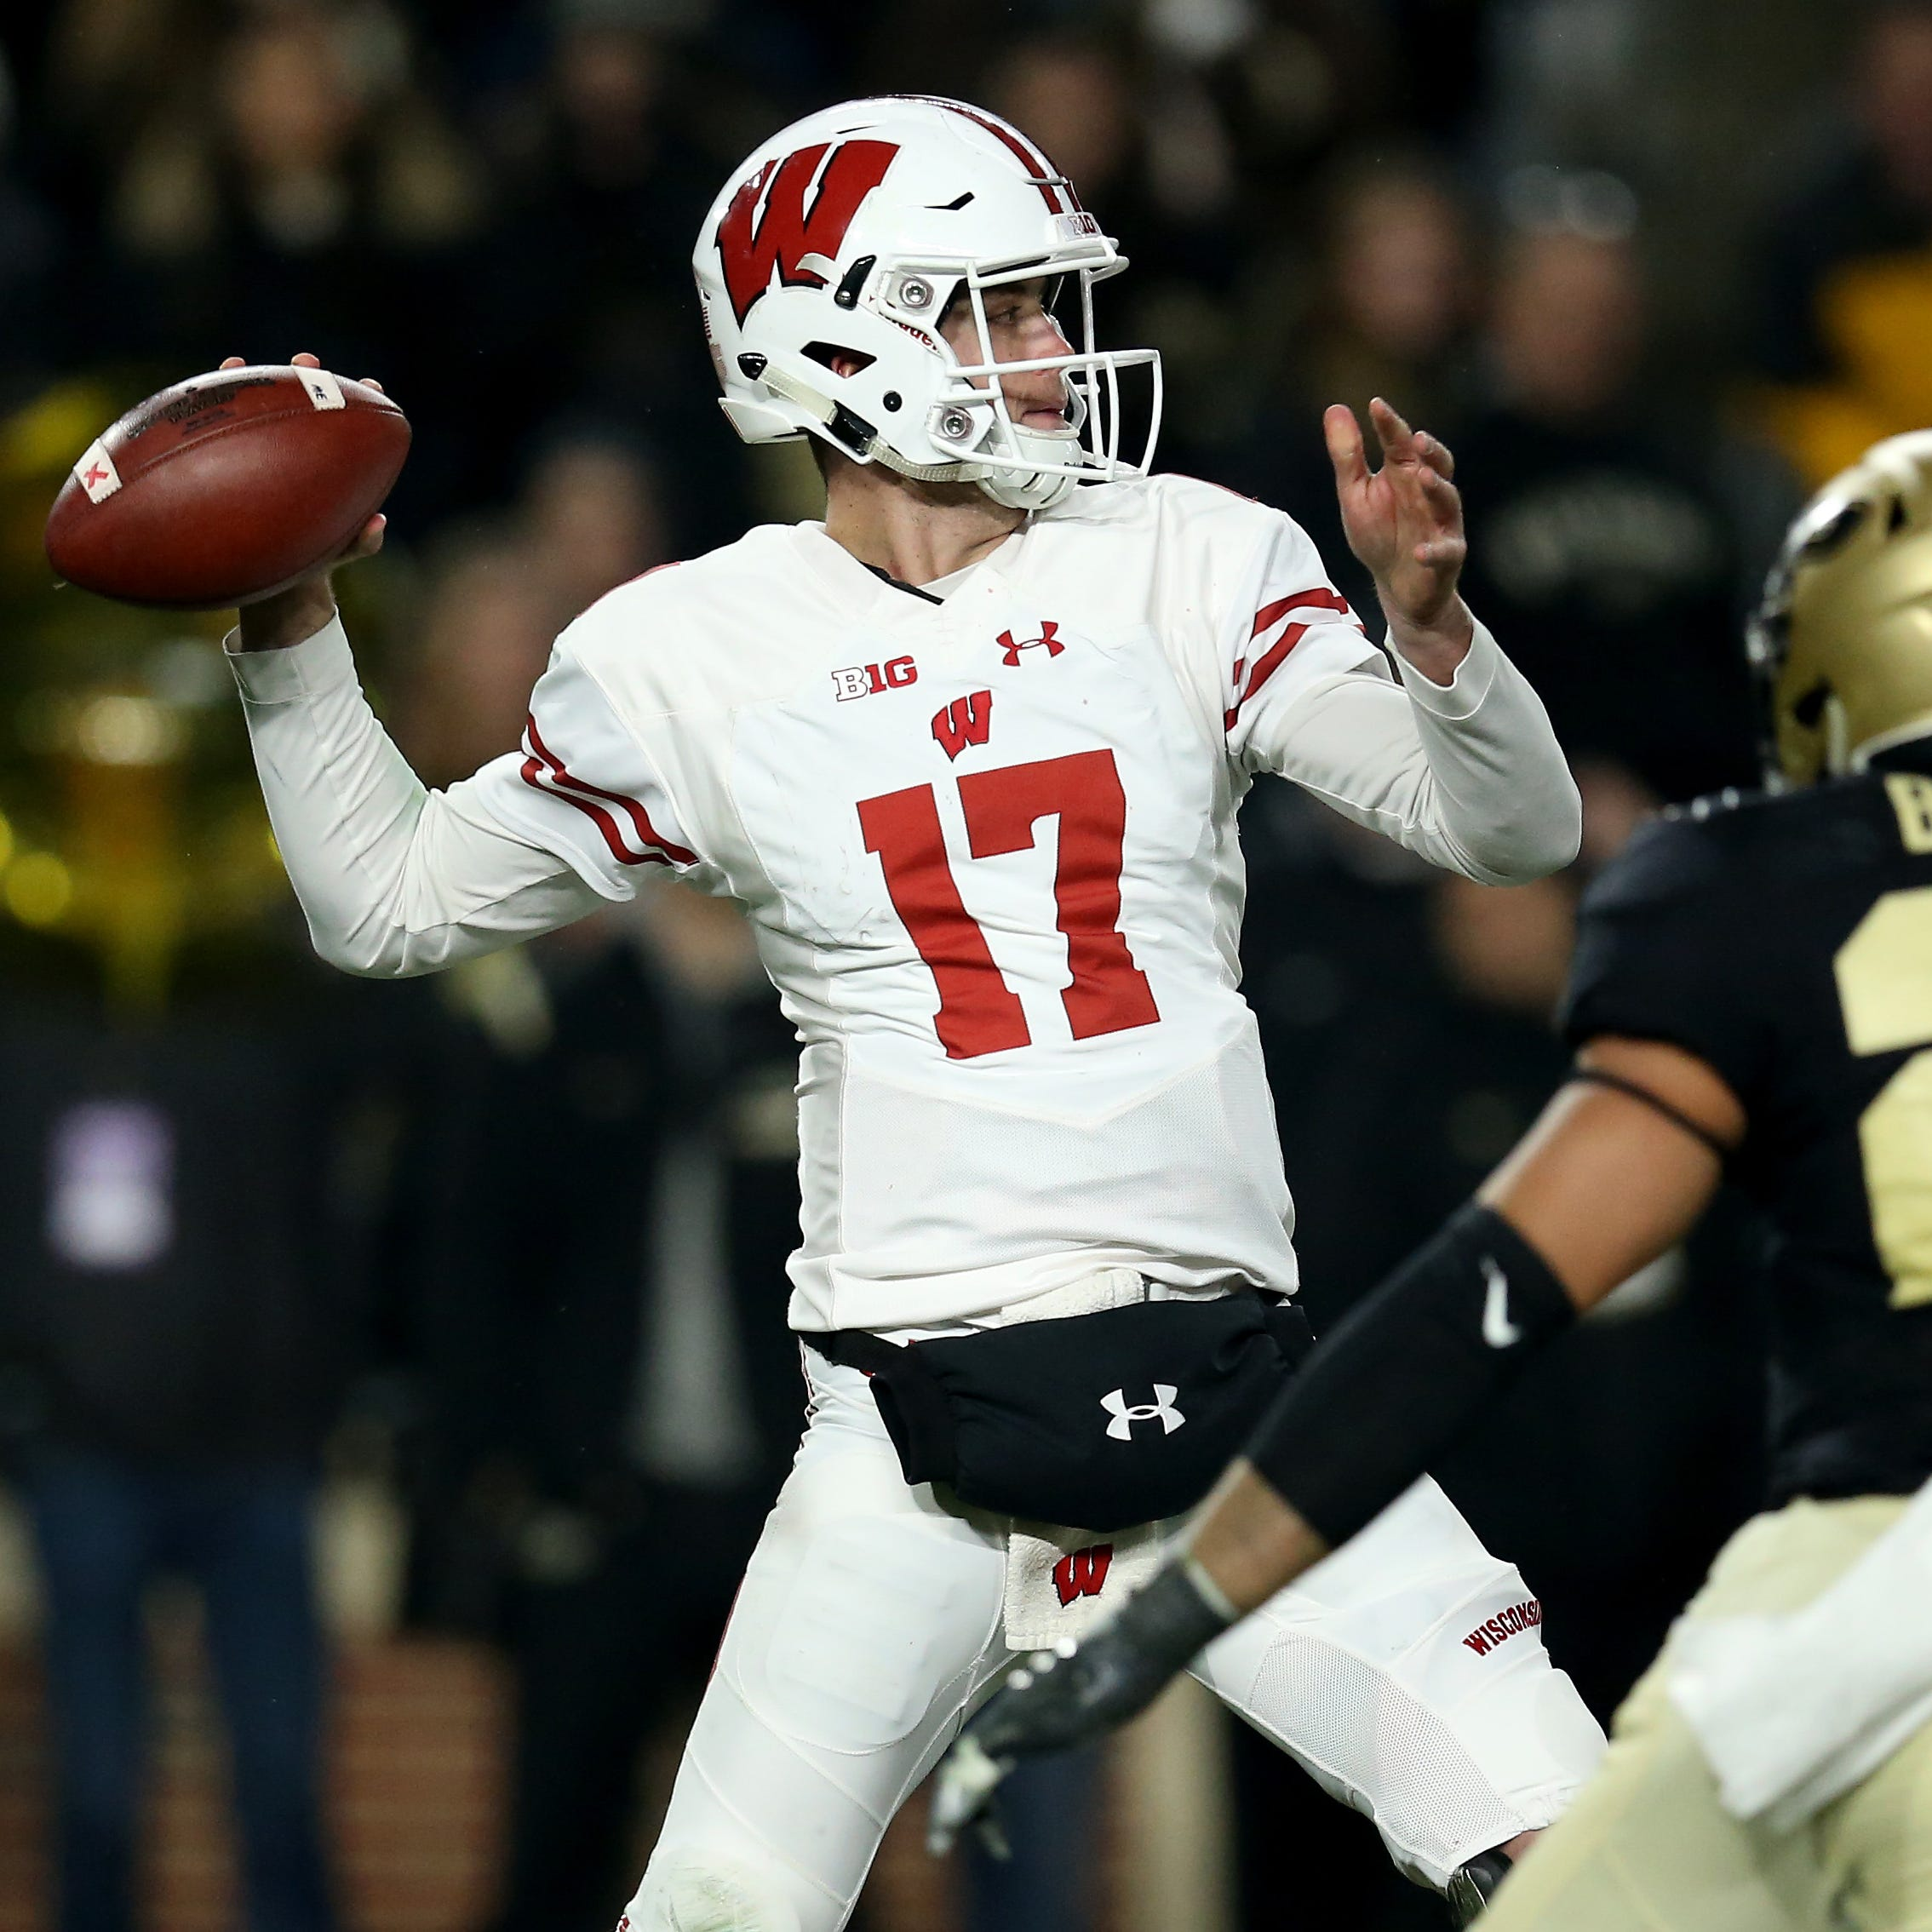 UW's Jack Coan made gains at Purdue and is ready to step in for Alex Hornibrook again